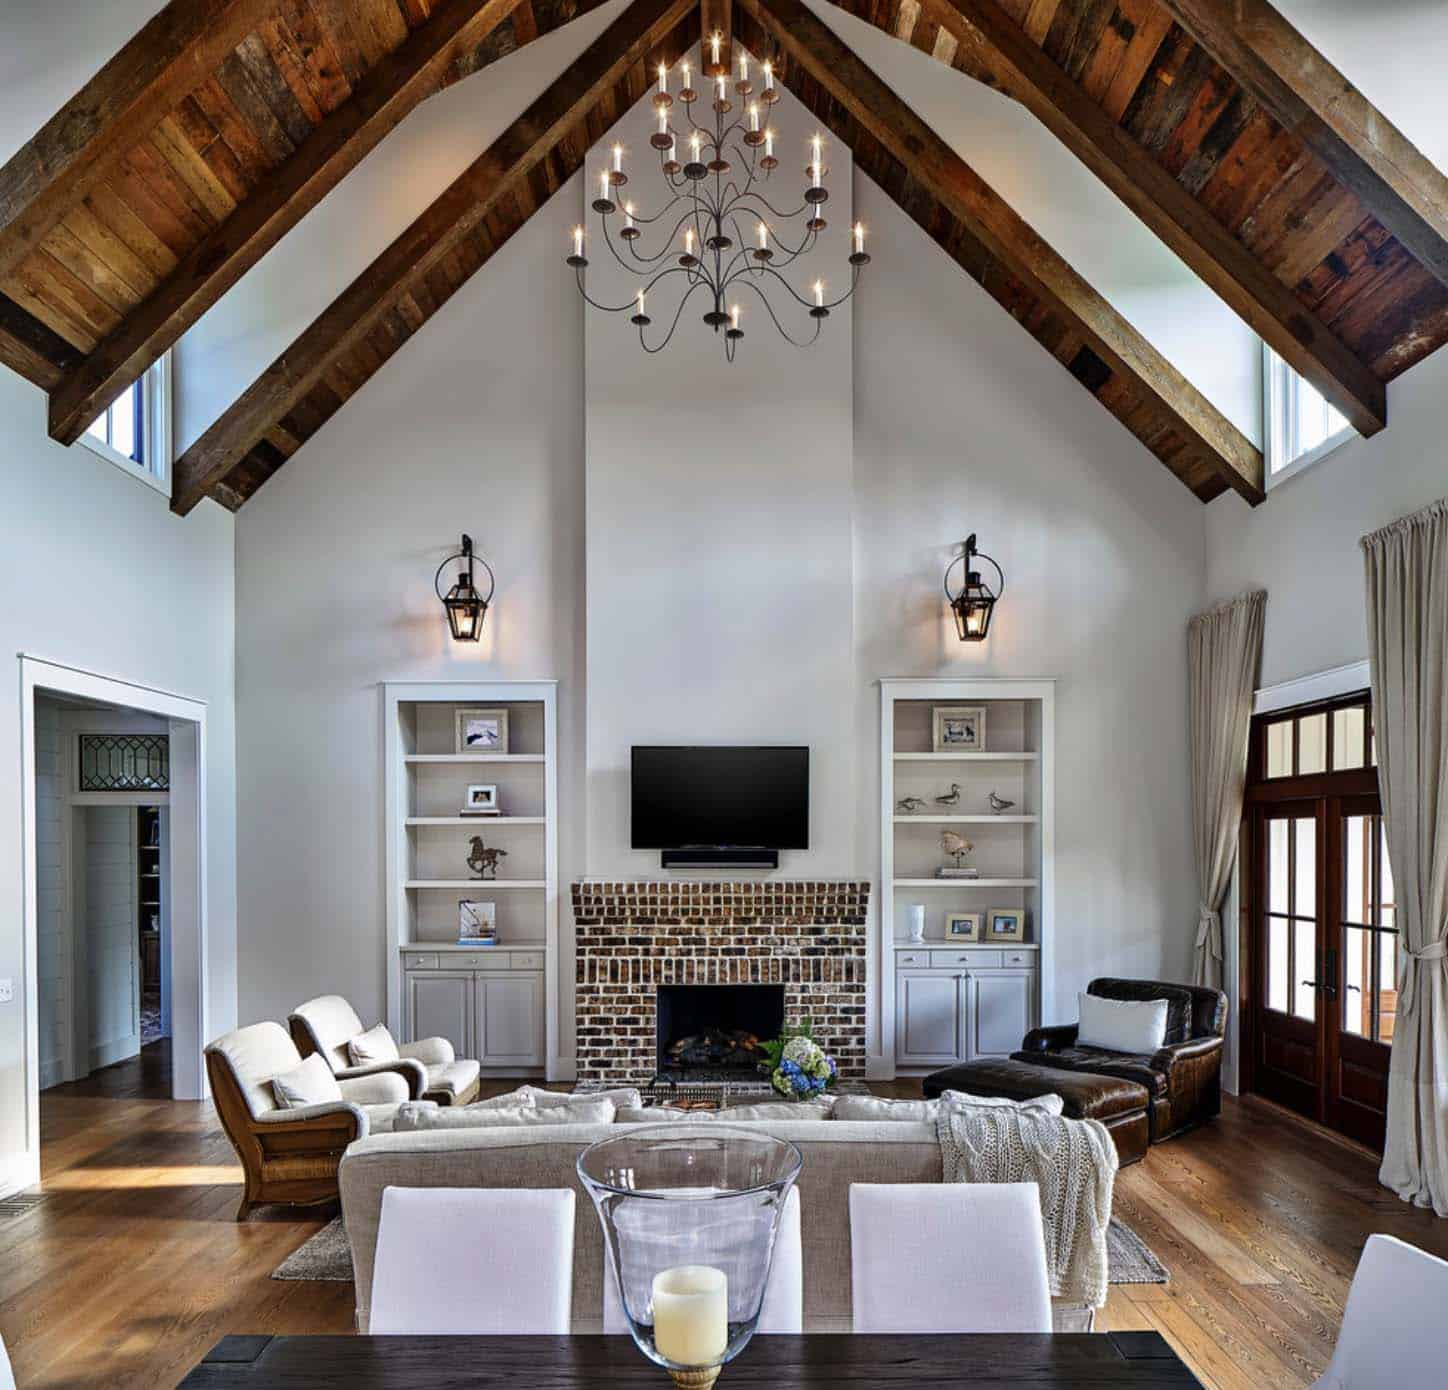 Exquisite South Carolina Farmhouse Evoking A Low Country Style